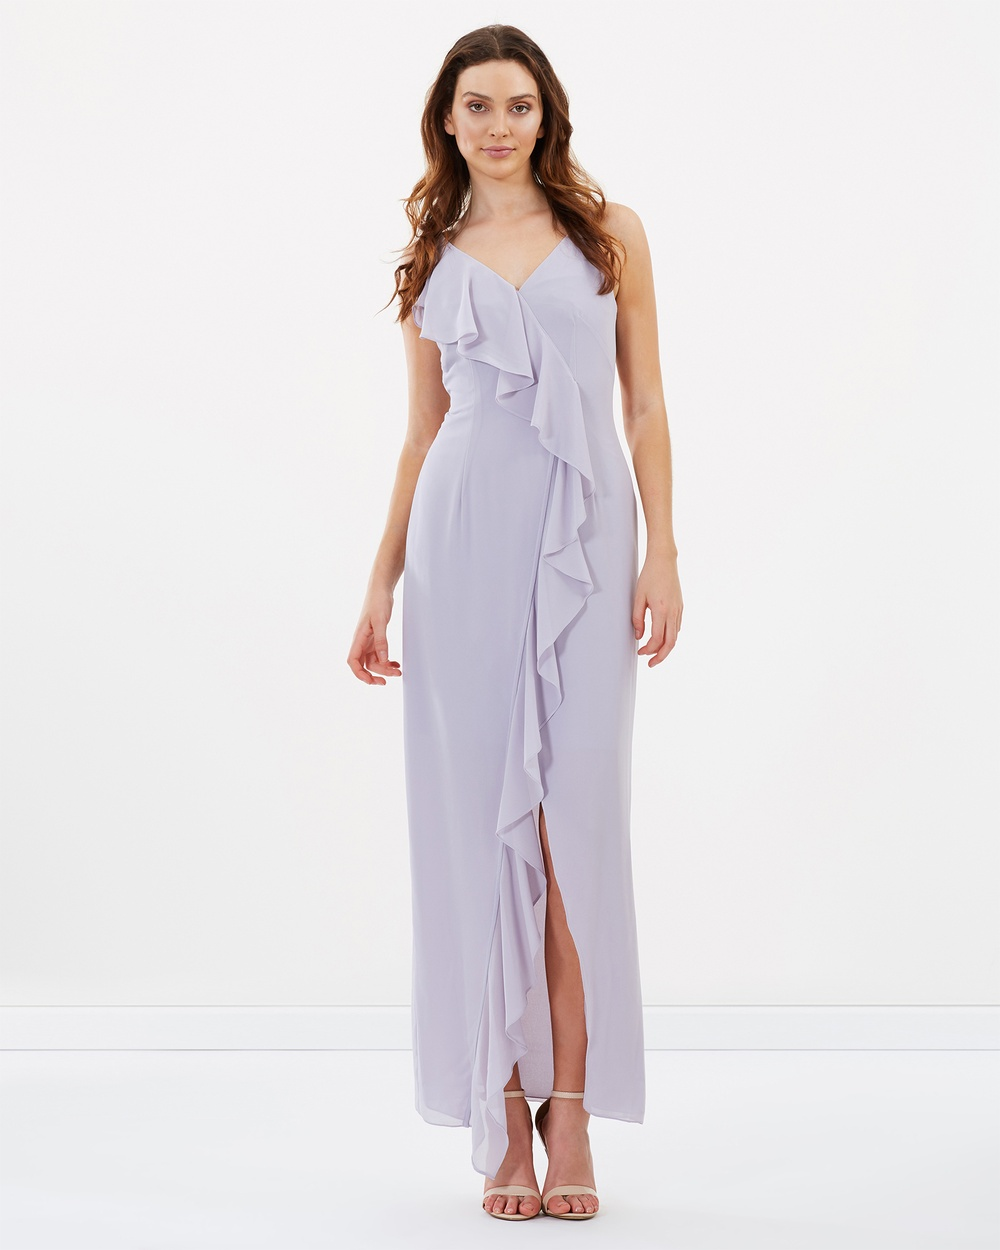 Alabaster The Label Willow Dress Bridesmaid Dresses Dusty Mauve Willow Dress